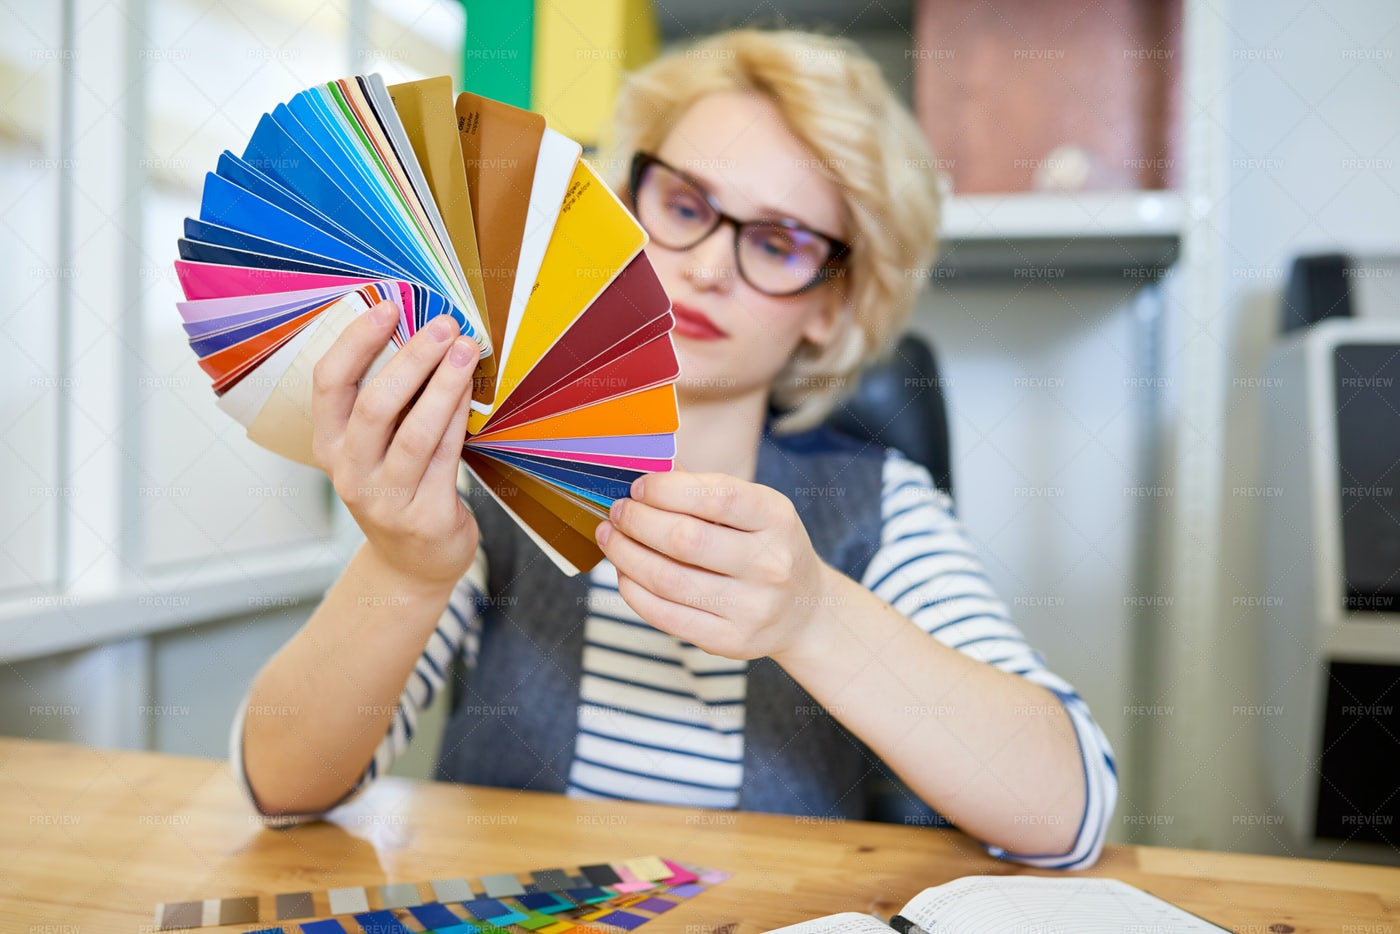 Designer Looking At Color Samples: Stock Photos